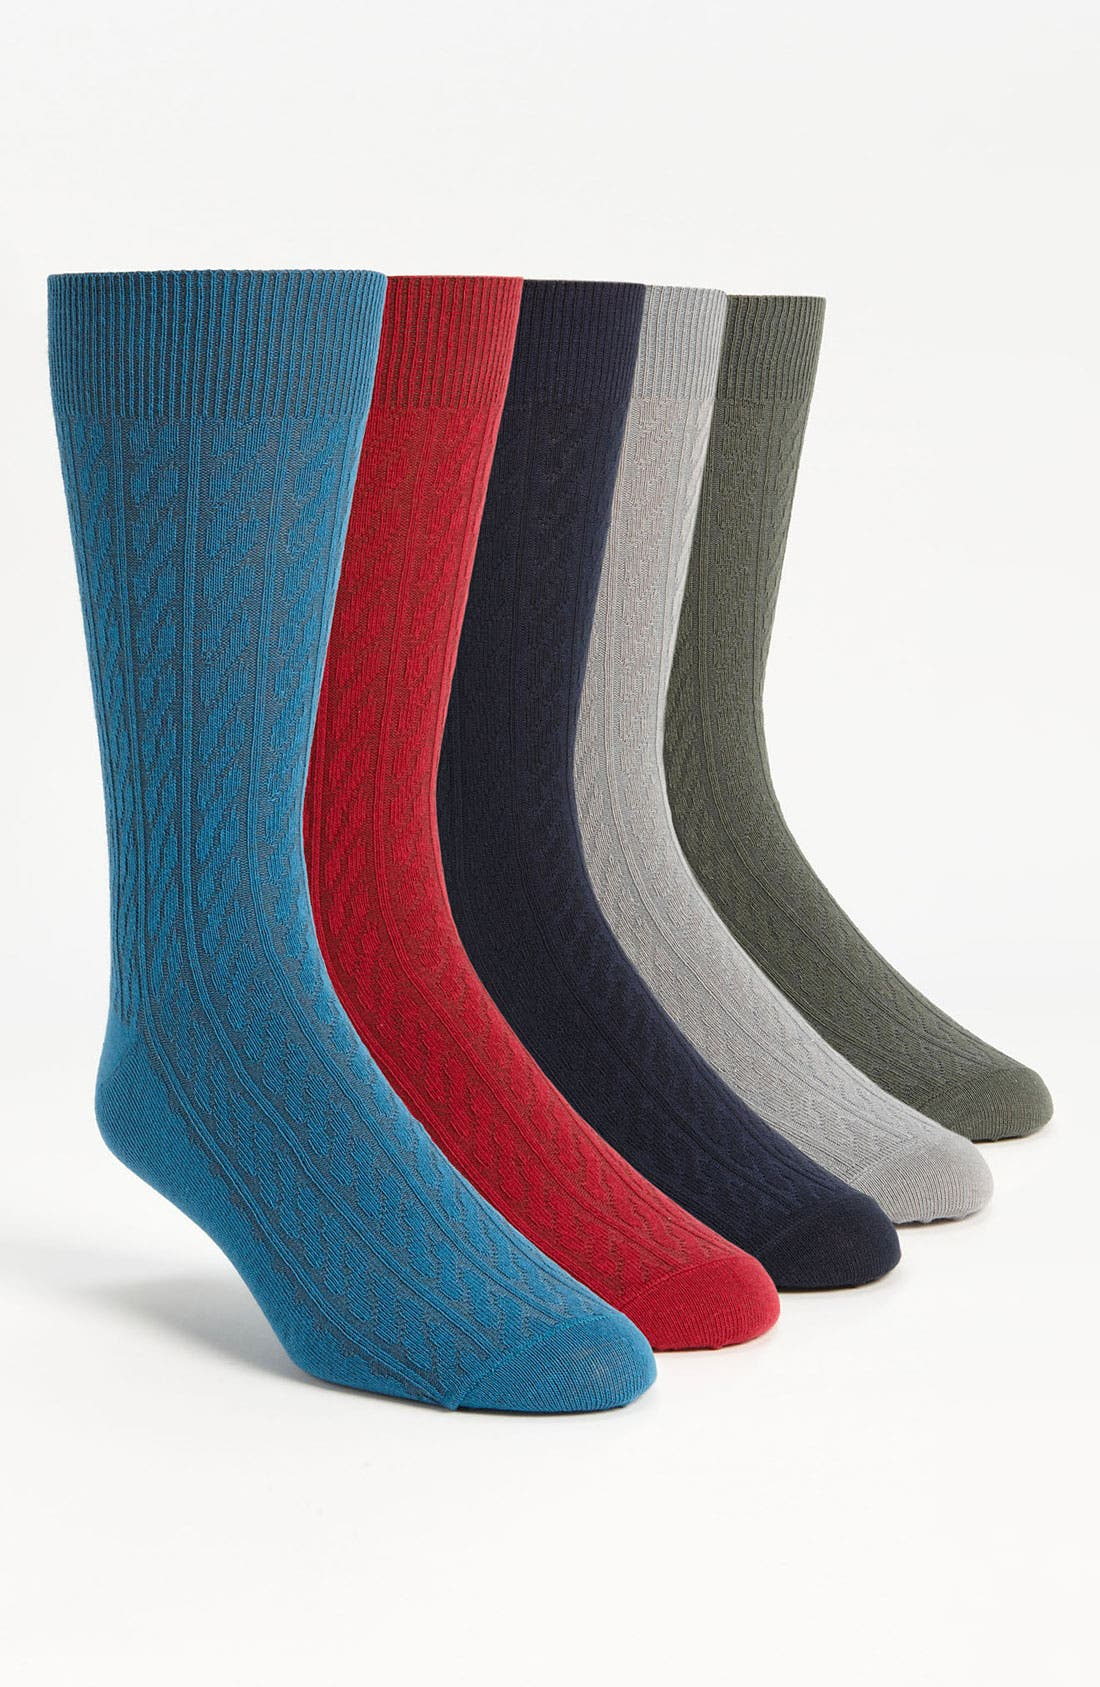 Main Image - Topman Cable Knit Socks (5-Pack)